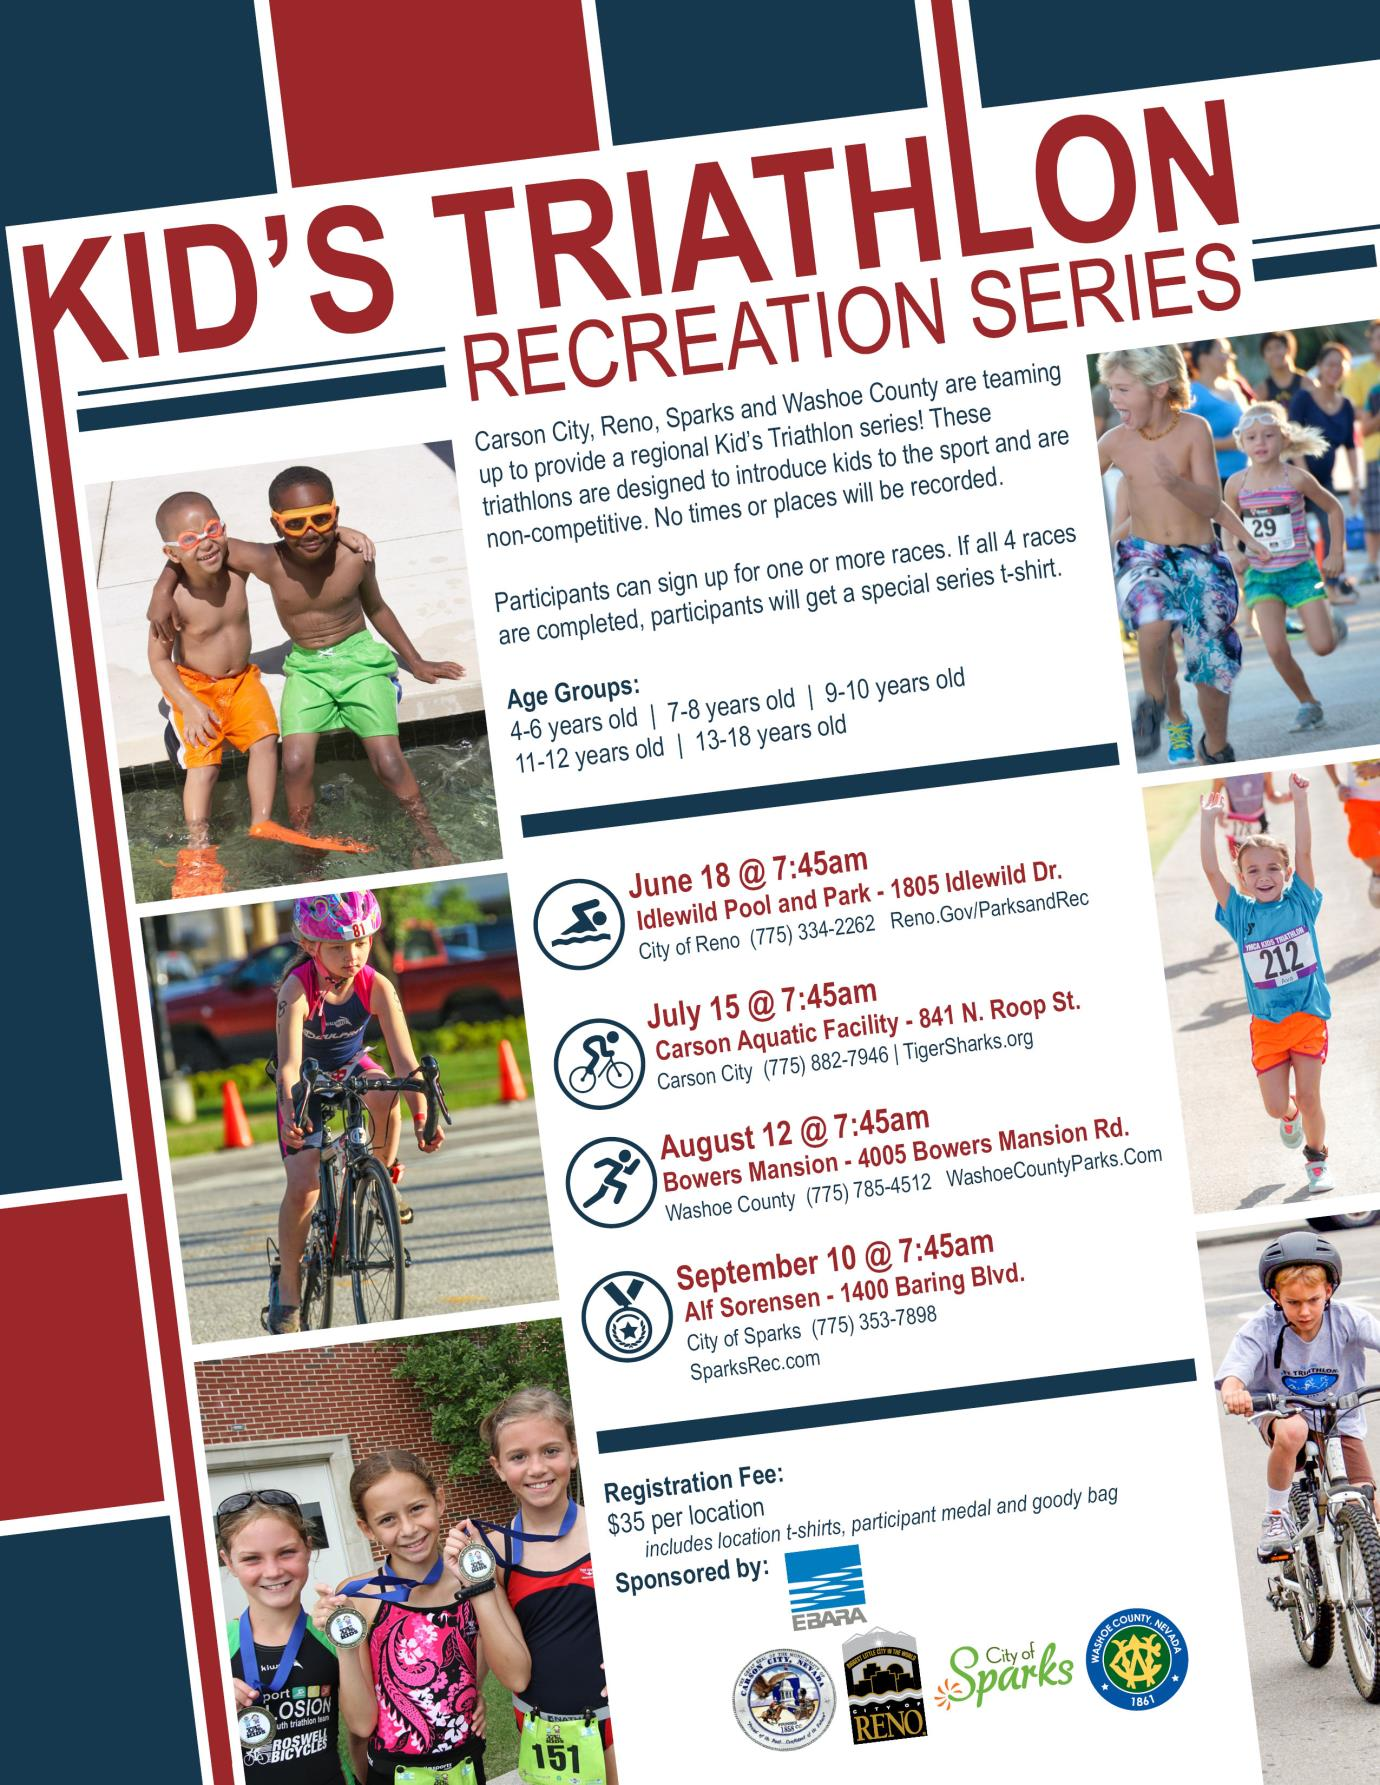 Kids Triathlon recreation series flyer